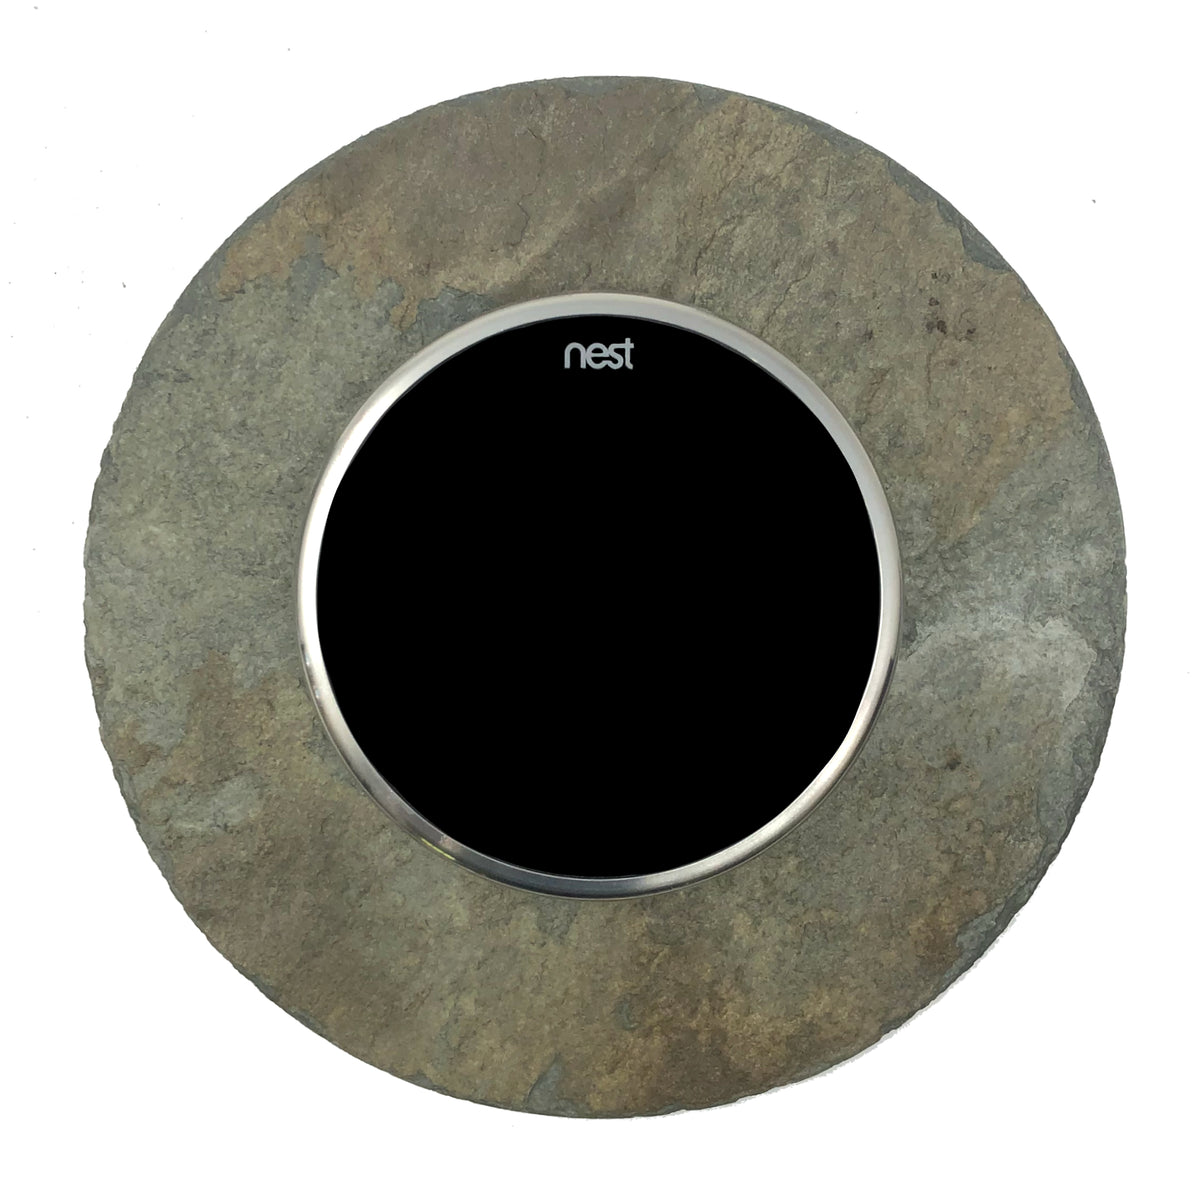 Nest Wall Plate 6 inches Round Earth Tone Slate Stone